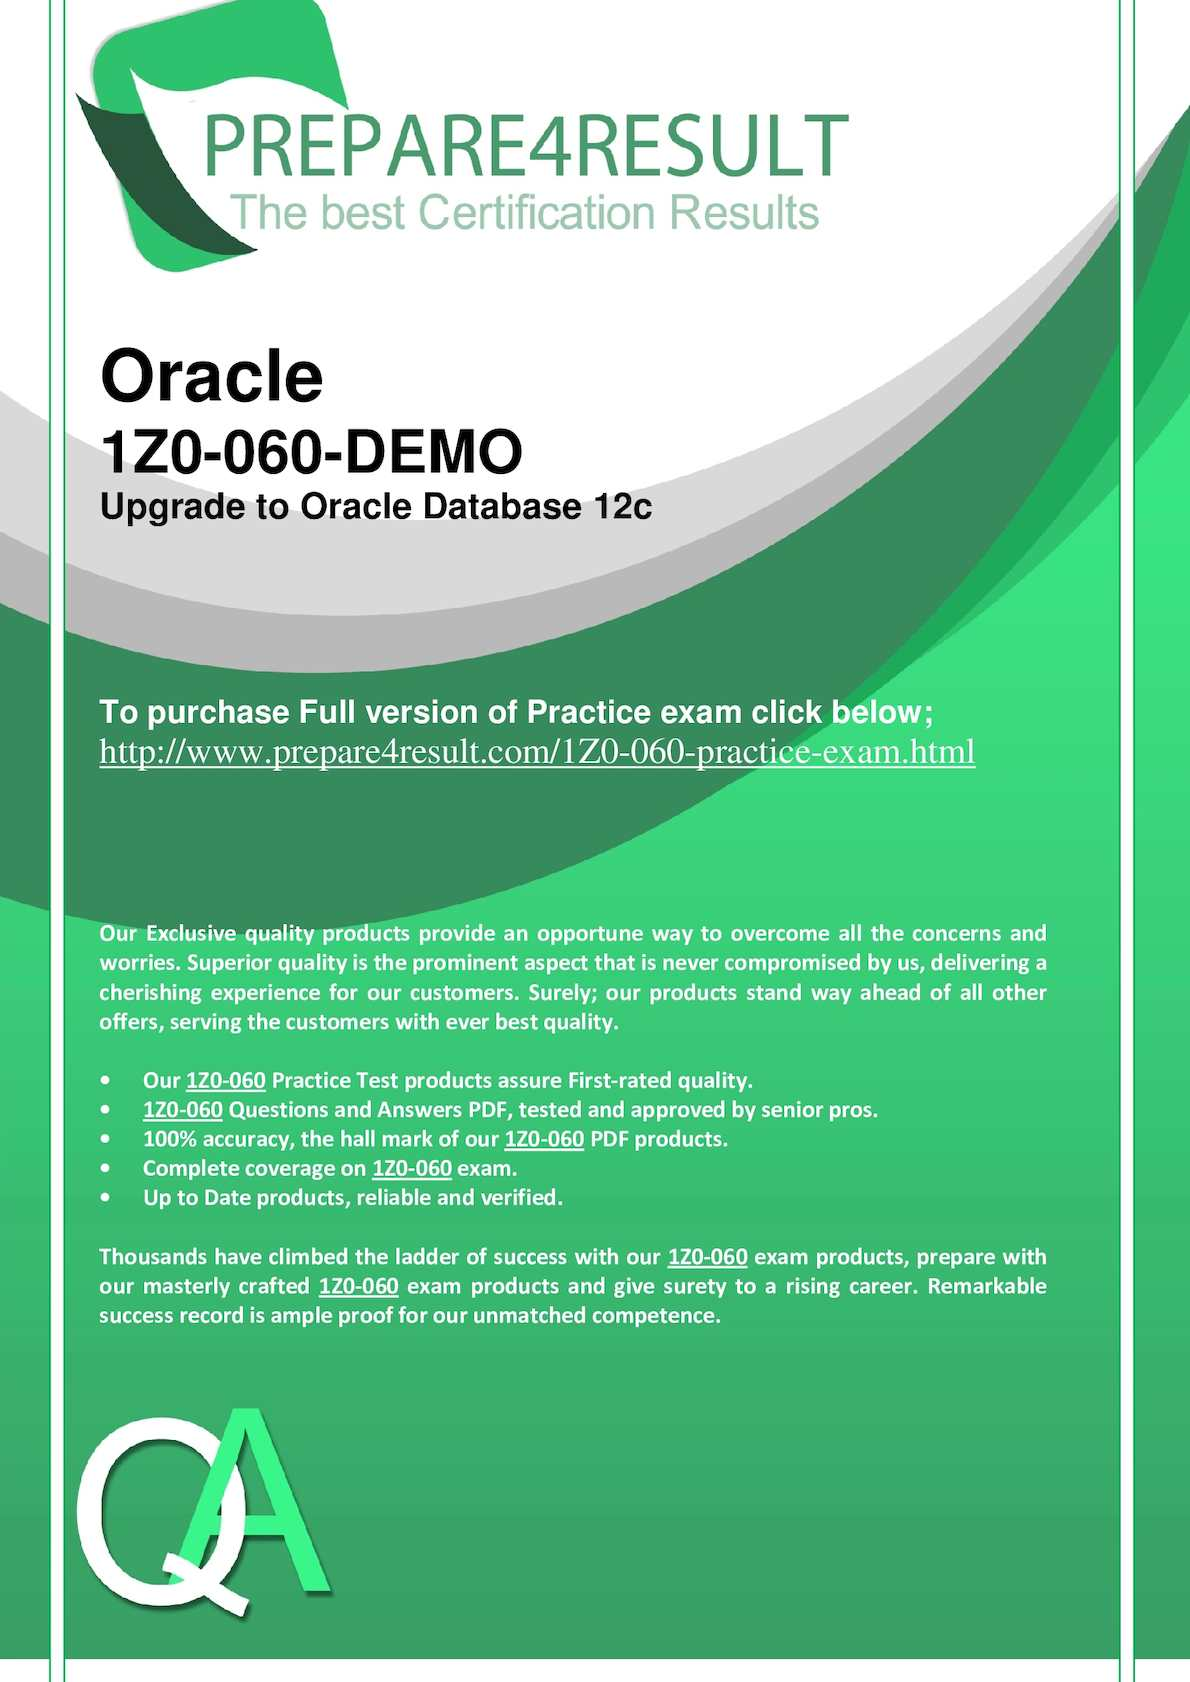 Calaméo - Oracle 1Z0-060 - Upgrade to Oracle Database 12c